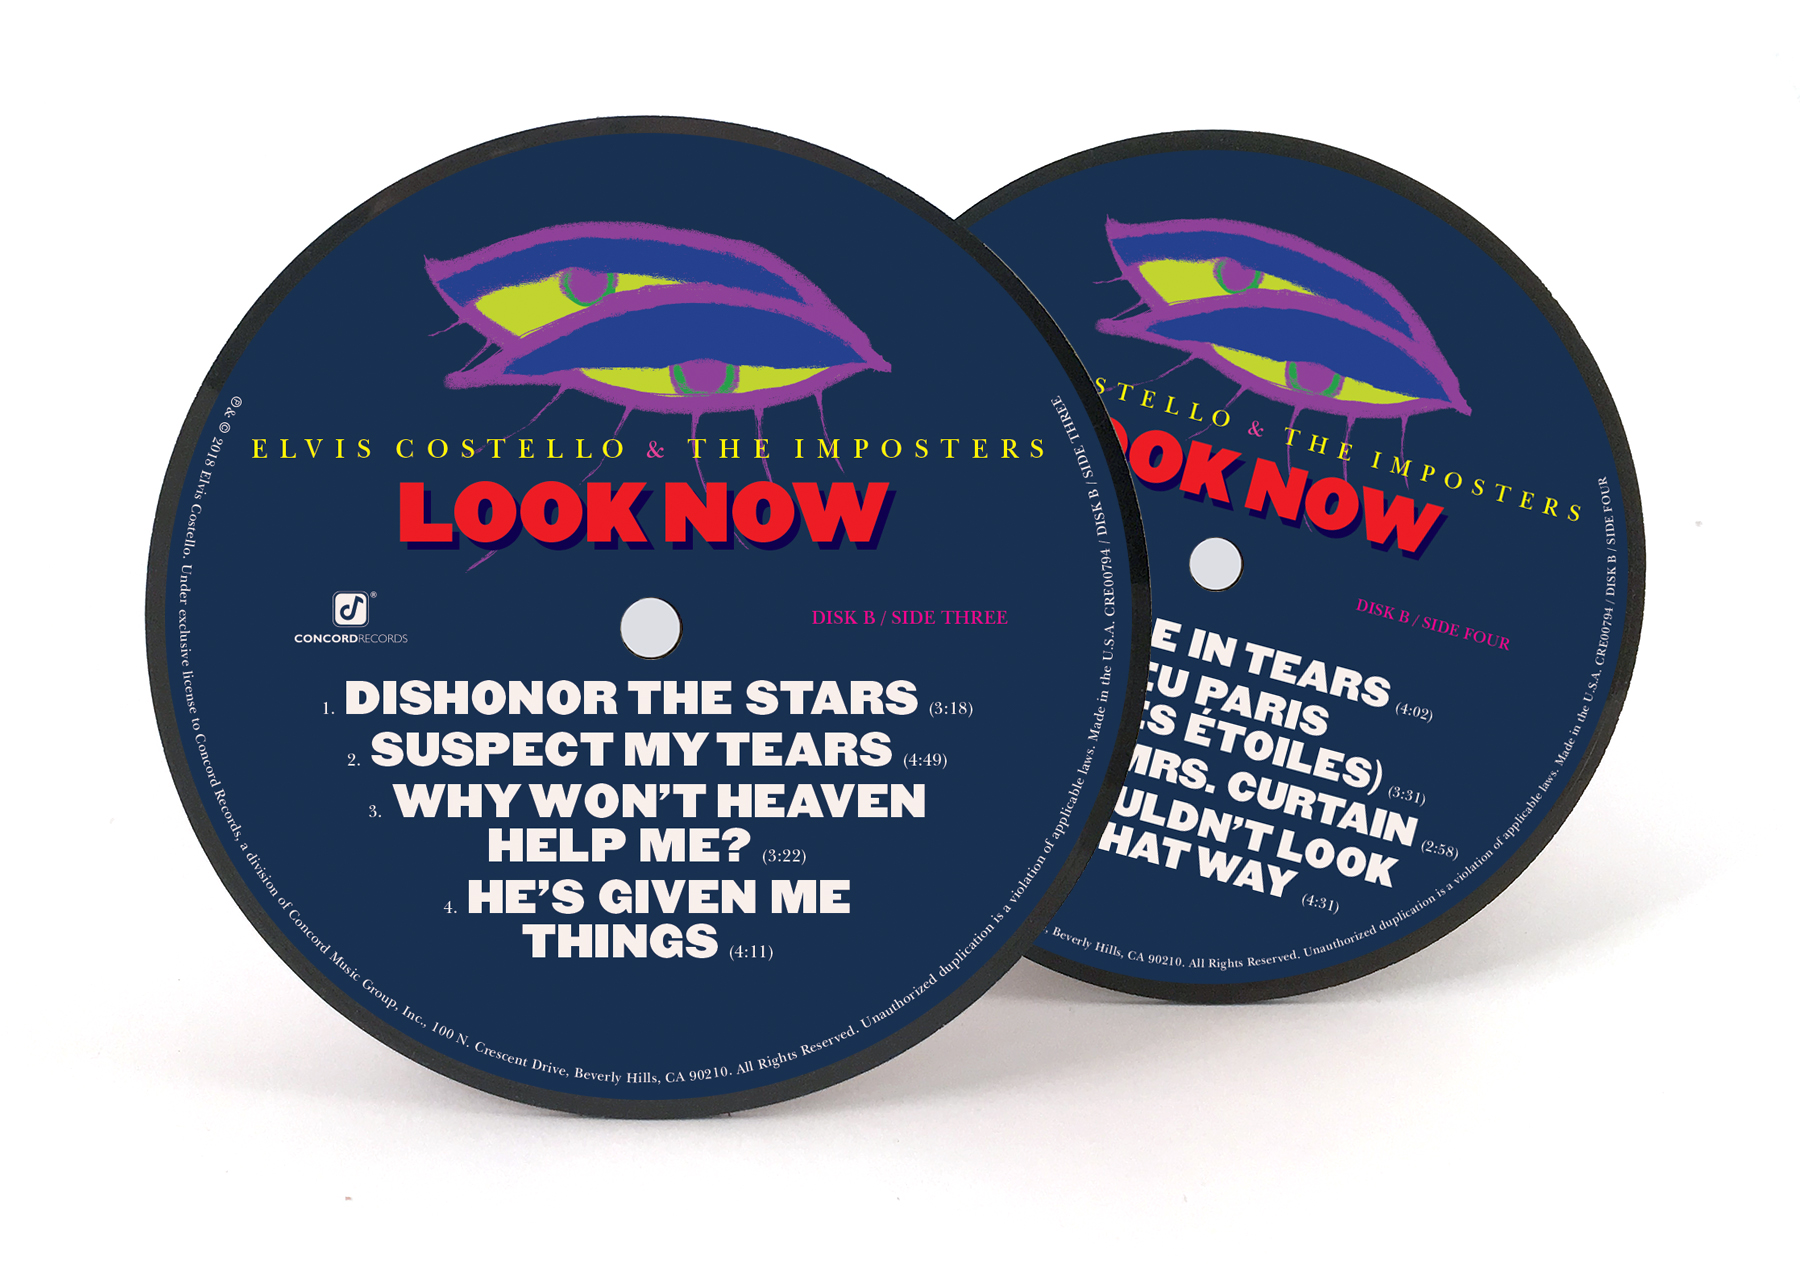 "Look Now Deluxe 7"" Box Set Edition (ten 7"" vinyl) + Look Now Vinyl Coaster Set + Adapter - Limited to 1000 Units"